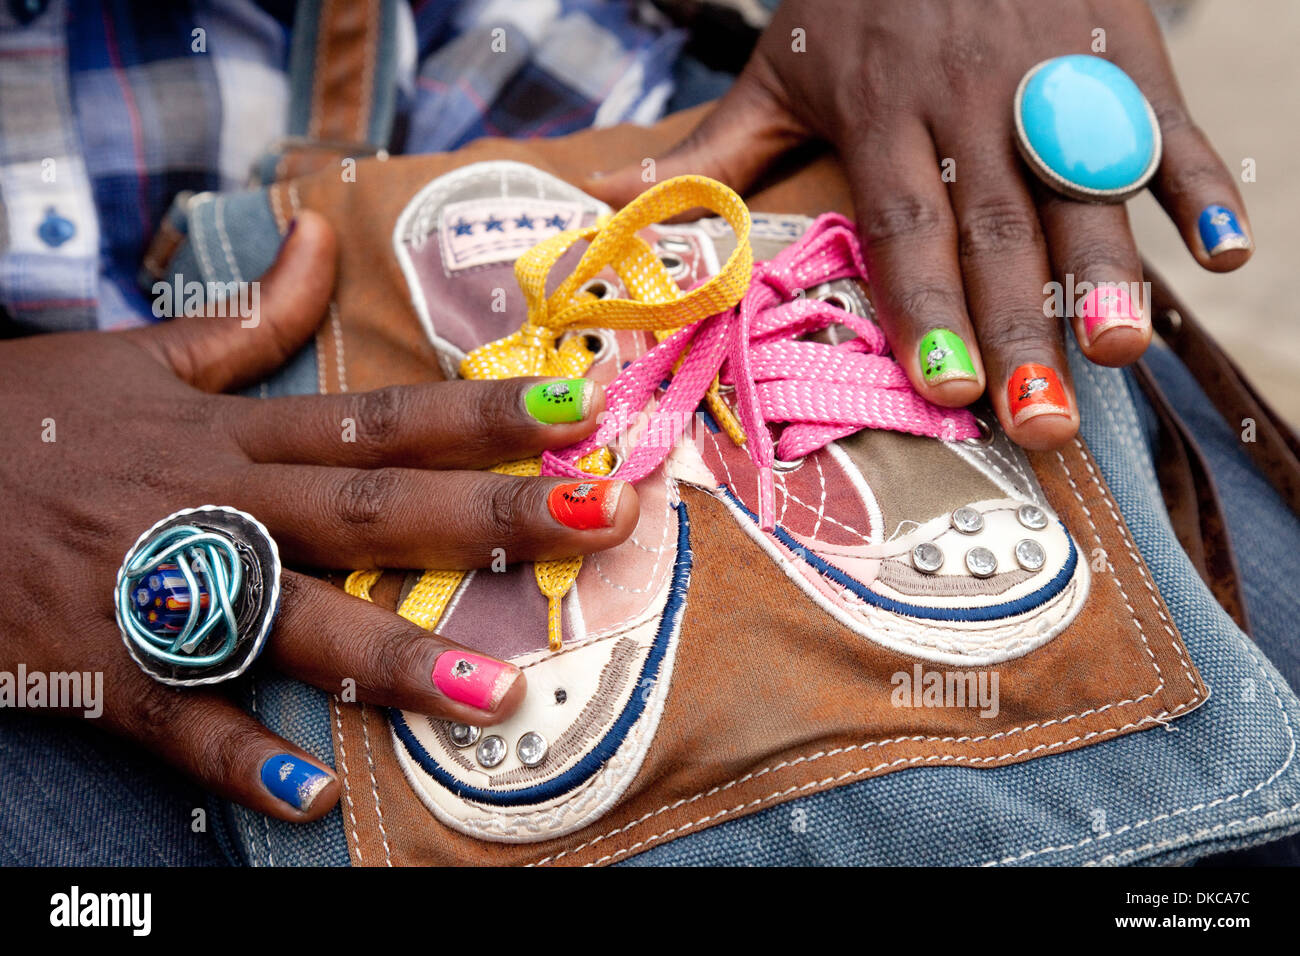 Cuban woman showing off her colourful painted nails and rings, Havana Cuba, Caribbean - Stock Image